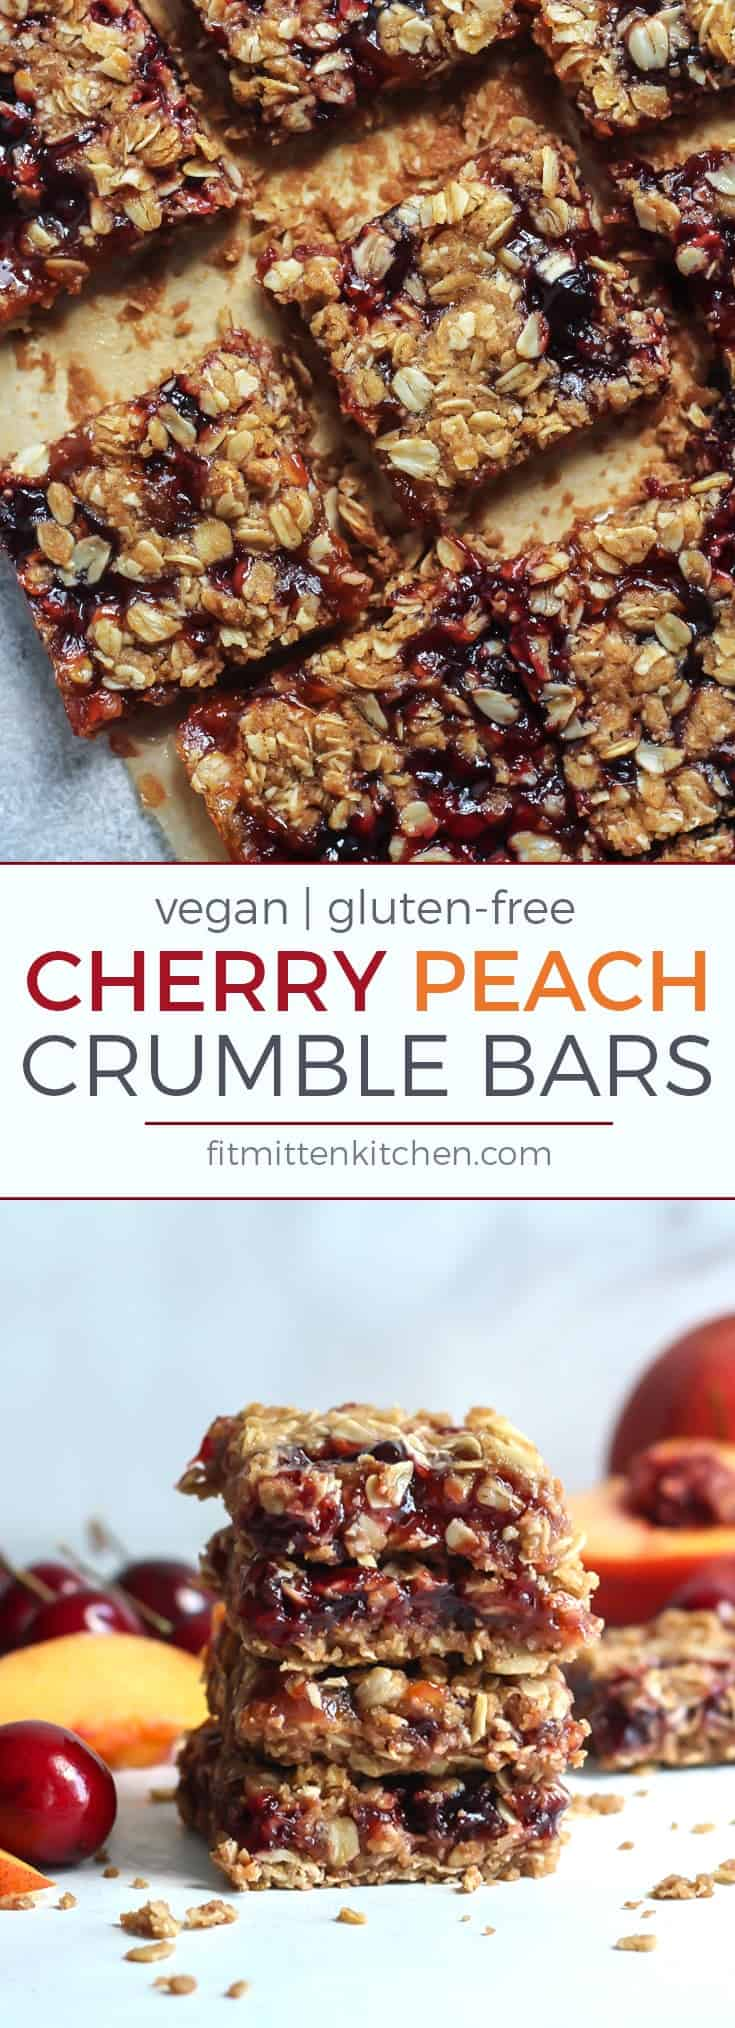 These Cherry Peach Crumble Bars are an absolute MUST. Vegan, gluten-free and quite simple! It's like peach crumble in bar form... plus cherries!